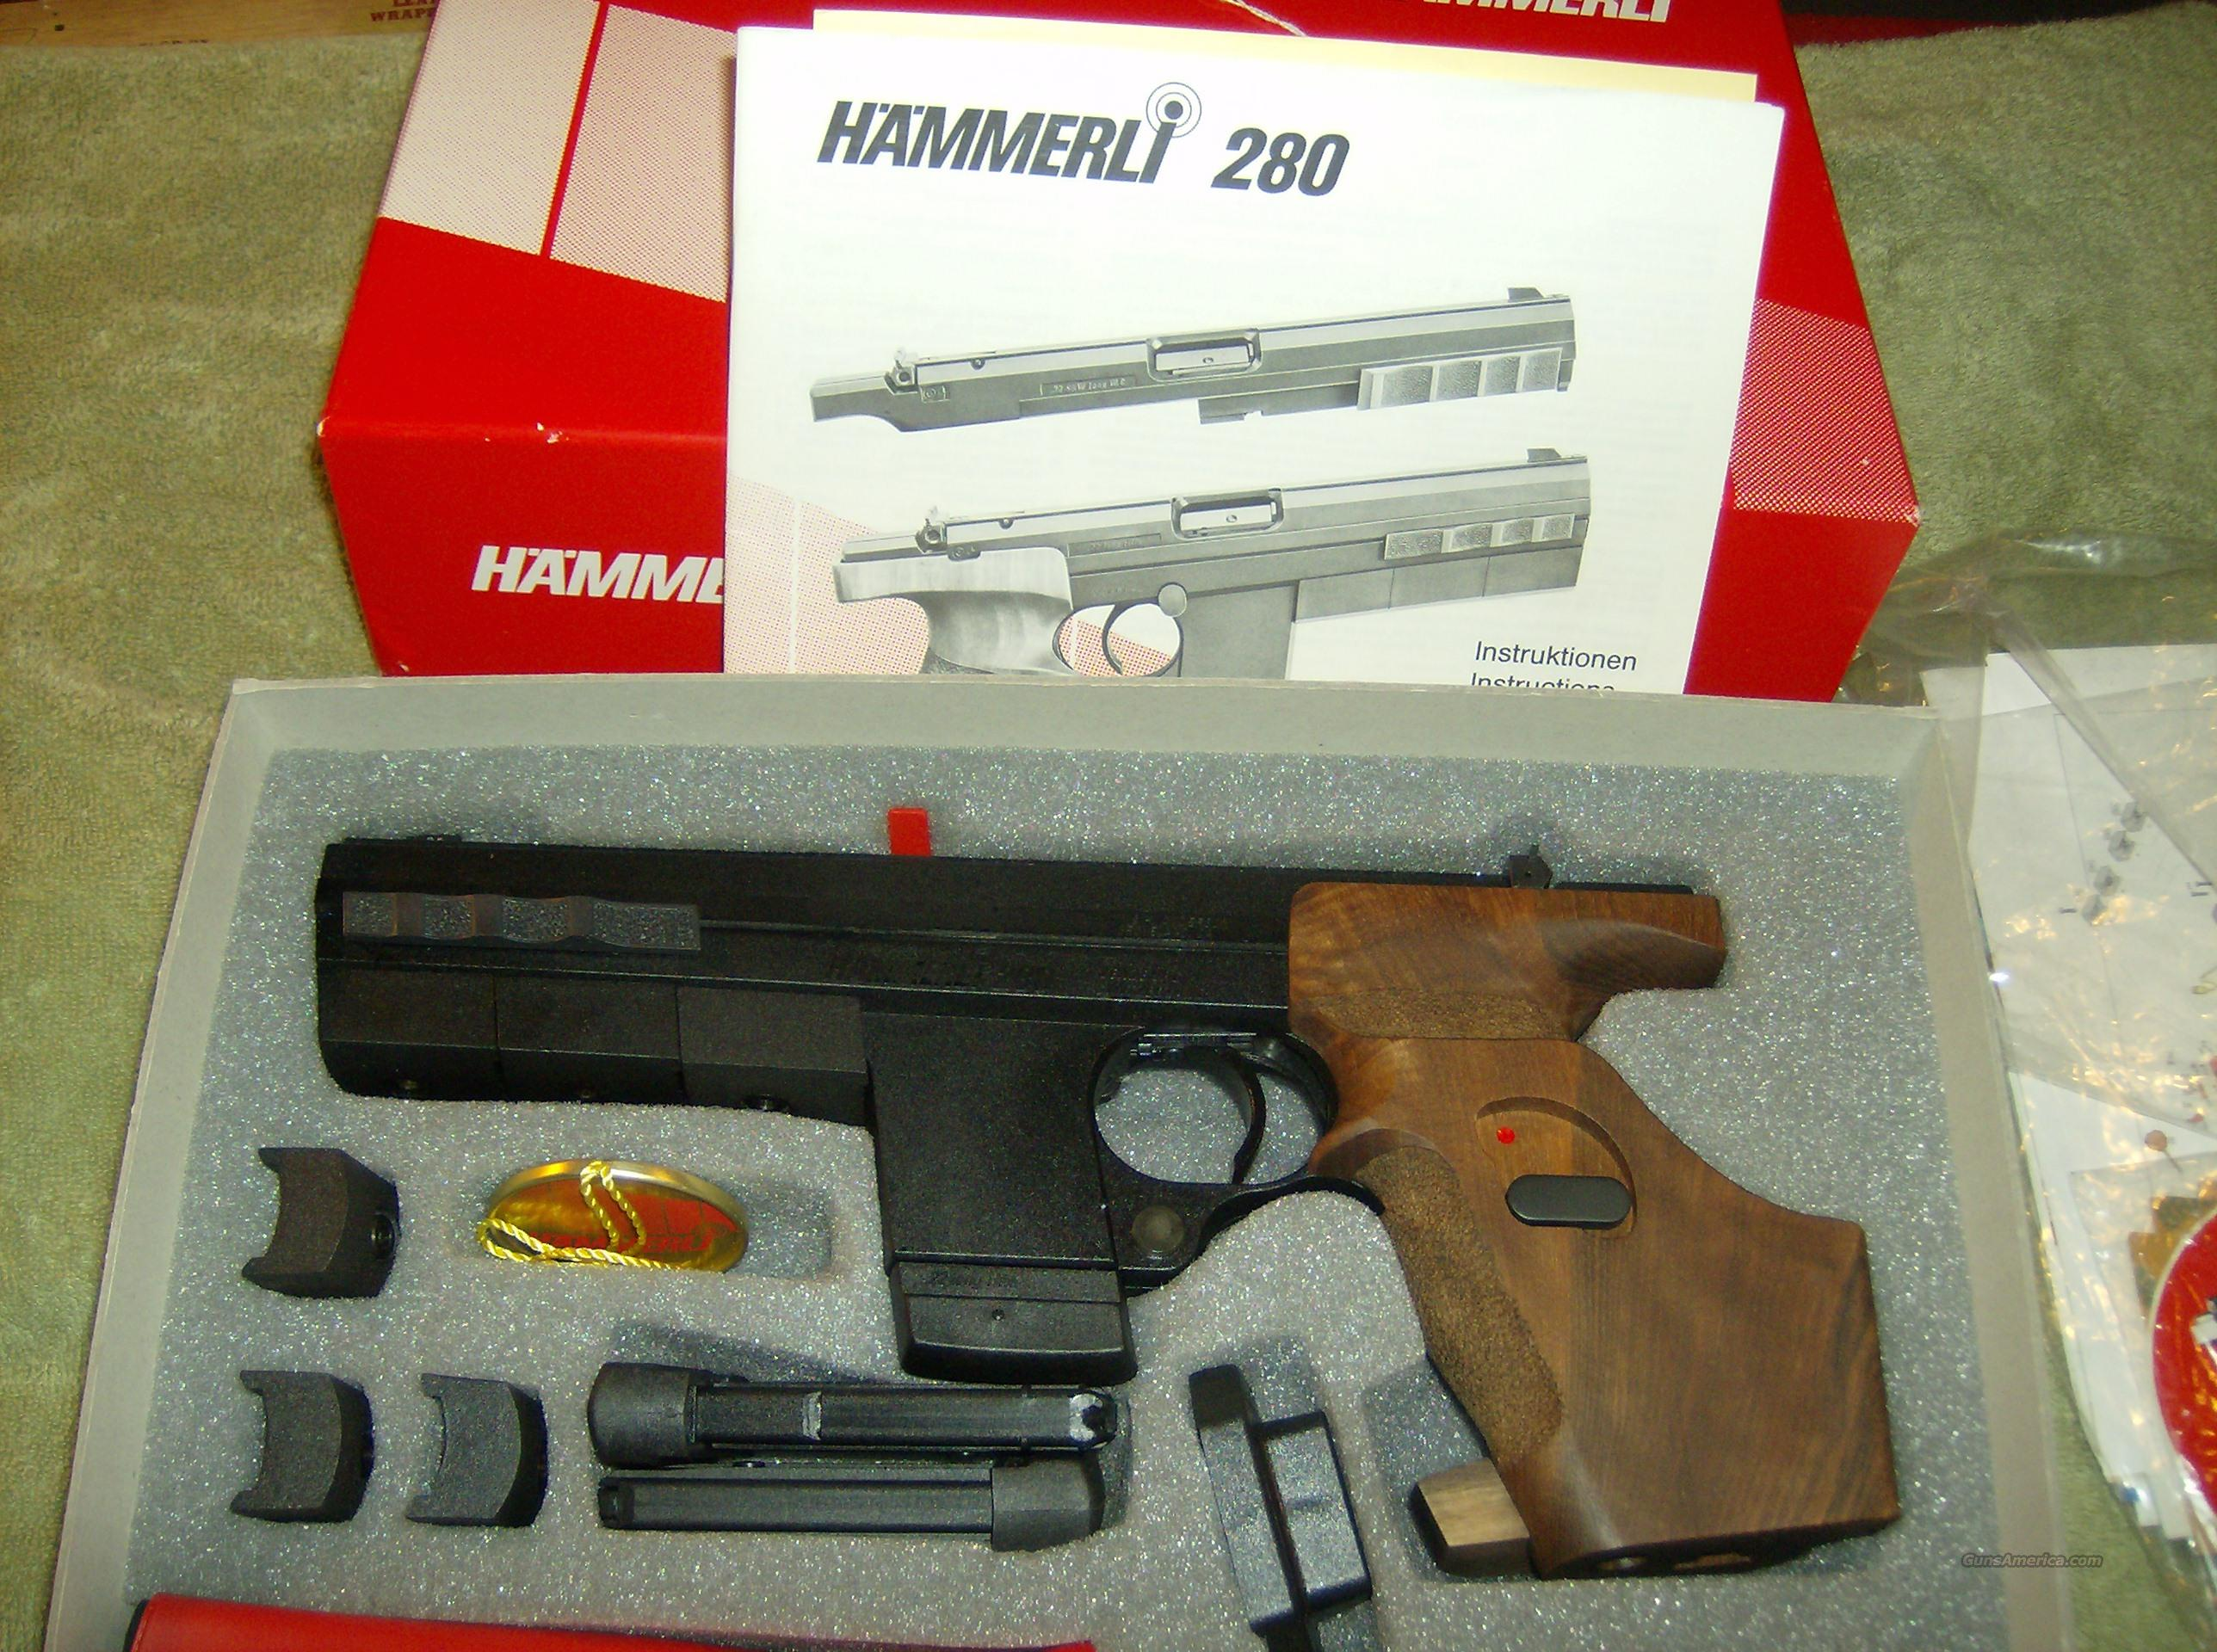 HAMMERLI 280 MODEL NEW IN MAKERS BOX  Guns > Pistols > Hammerli Pistols